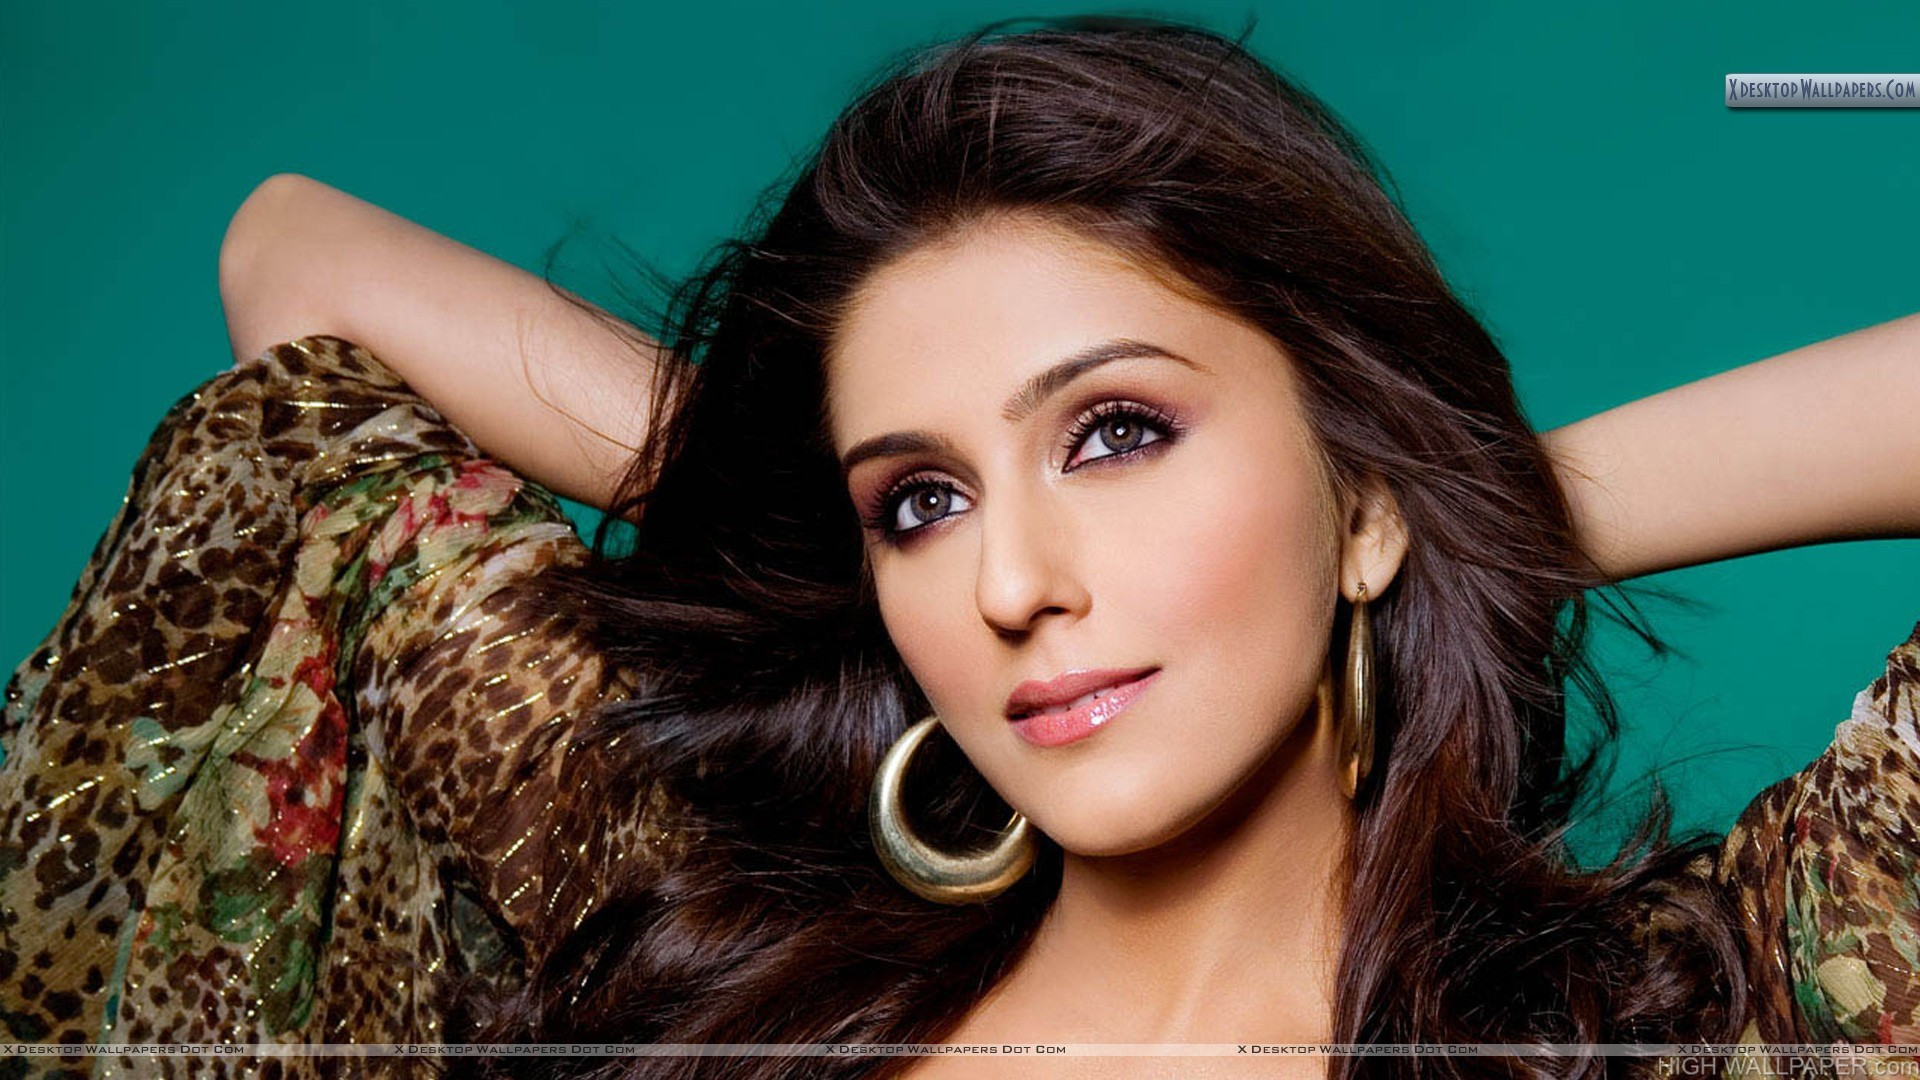 Aarti Chhabria Glossy Pink Lips Smiling